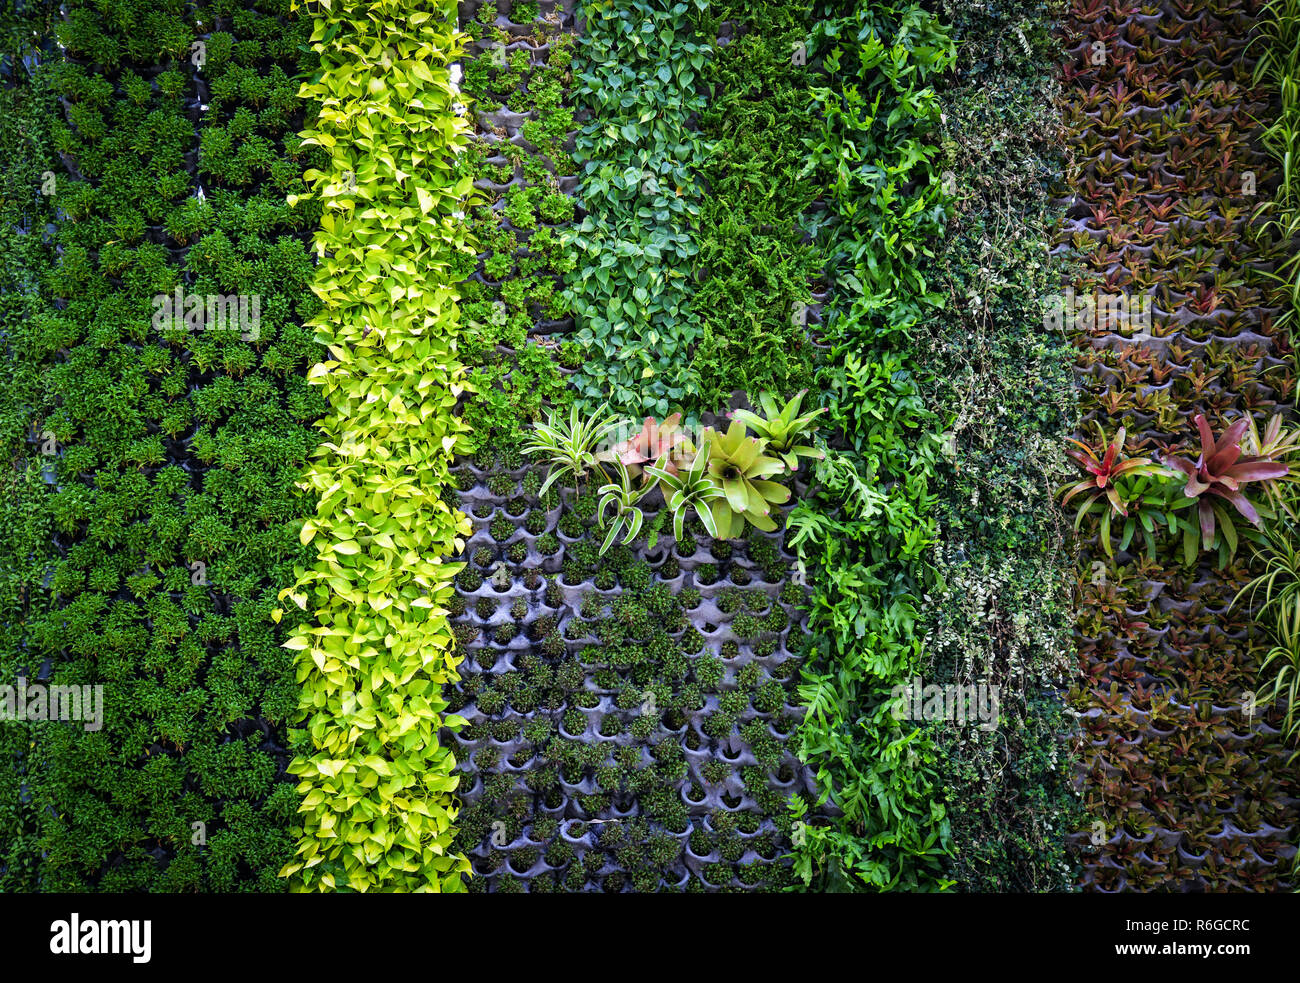 green plant background / pattern wall plant texture background Green leaves Various types